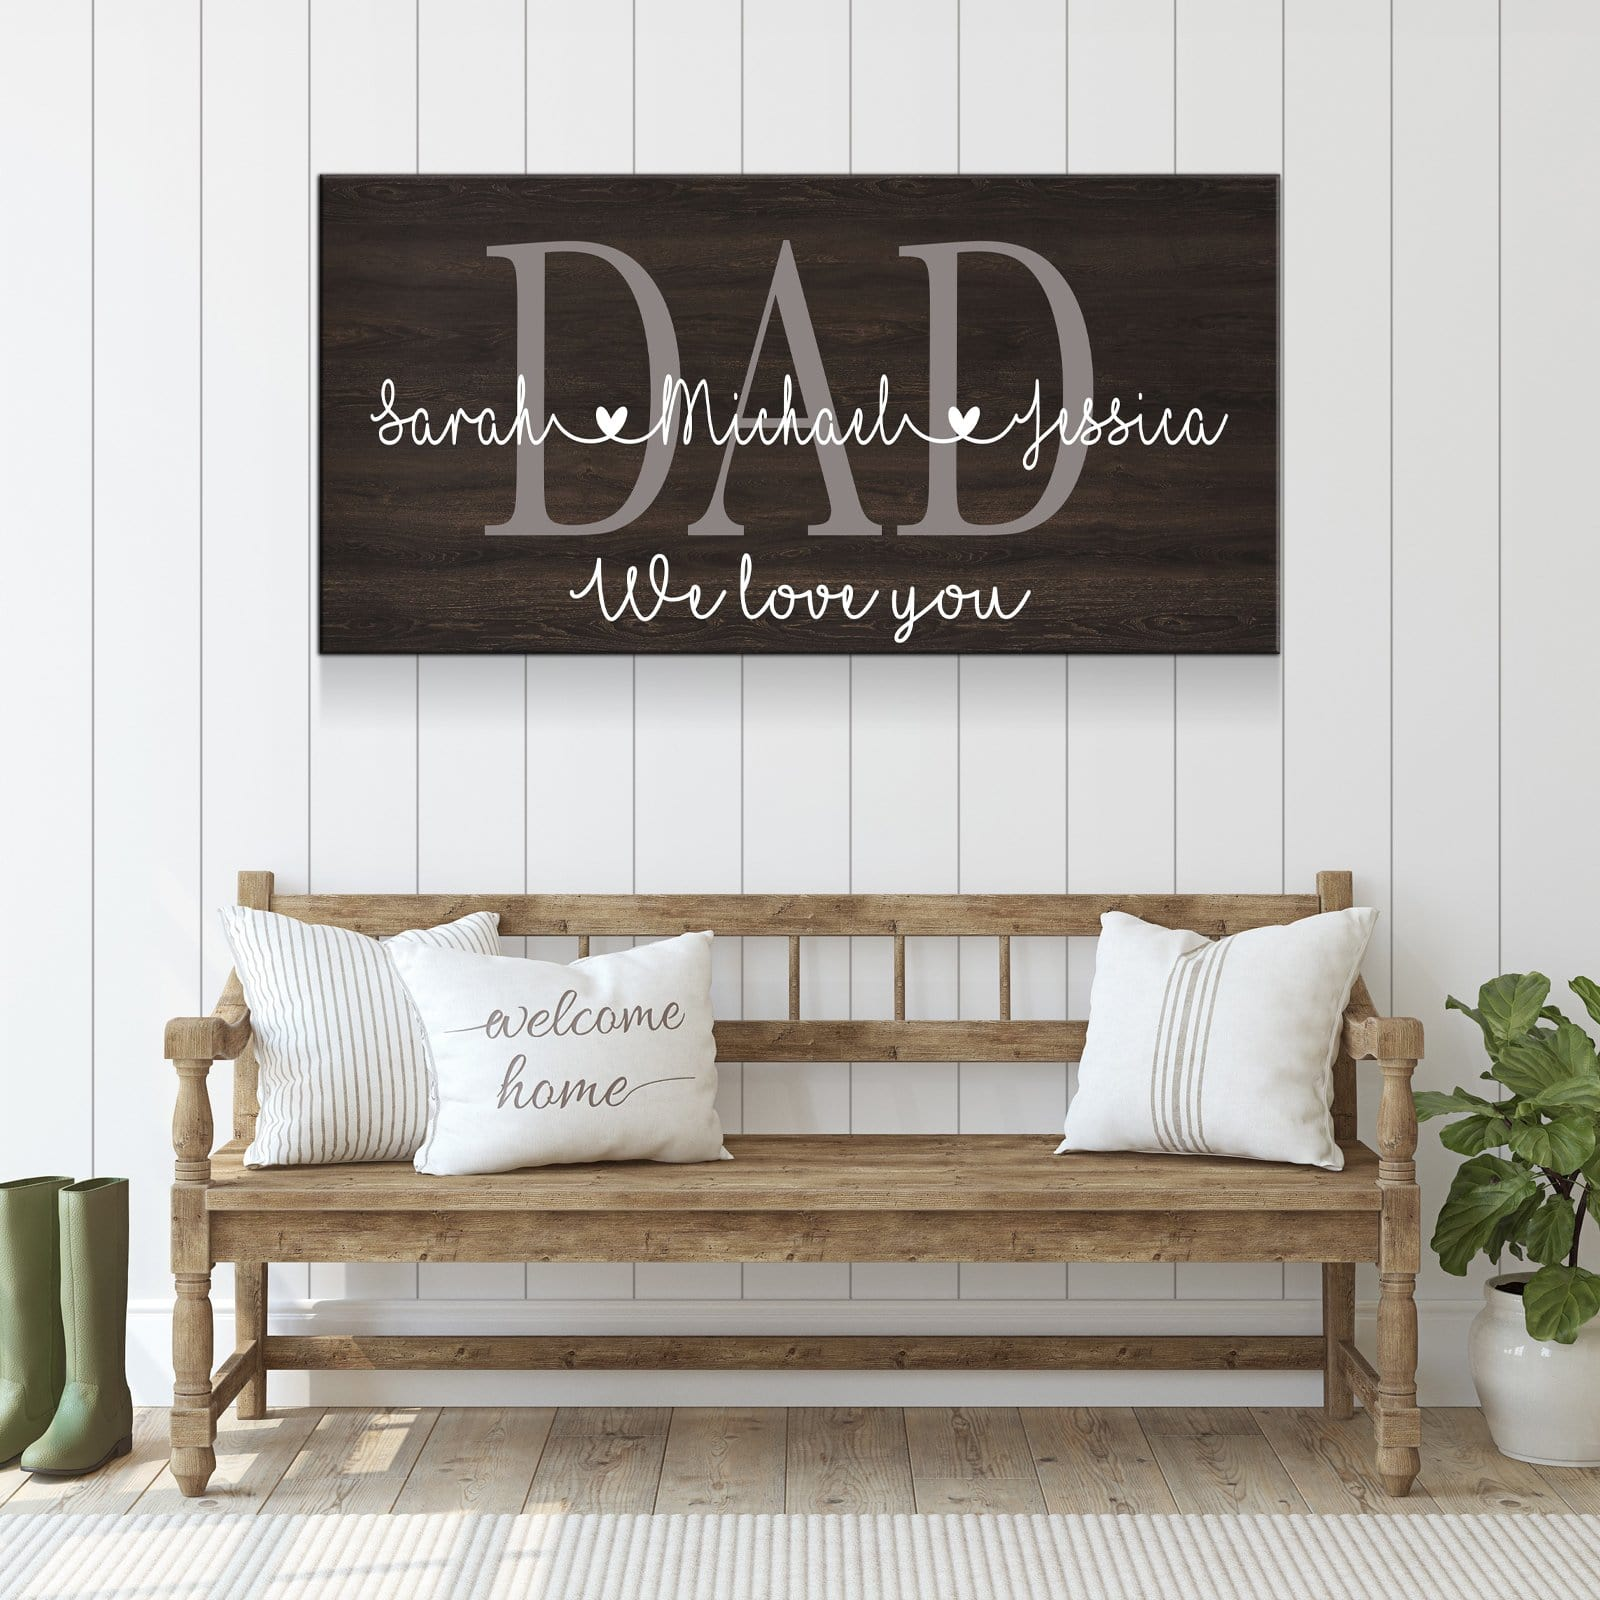 Dad We Love You - Personalized